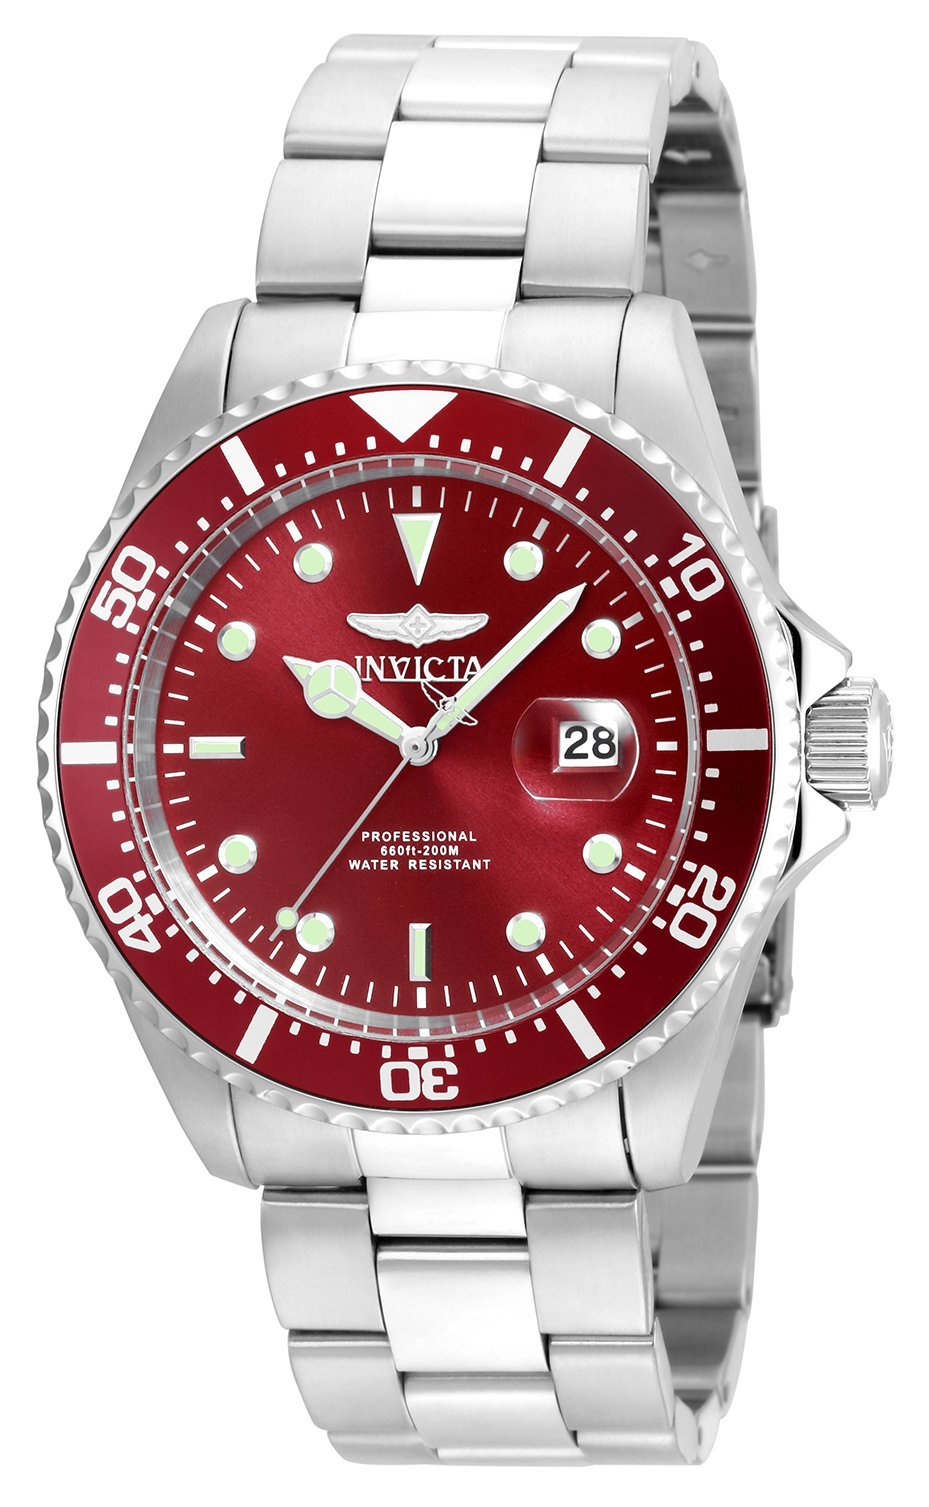 Invicta Men's Pro Diver Quartz Diving Watch with Stainless-Steel Strap, Silver, 22 (Model: 22048)